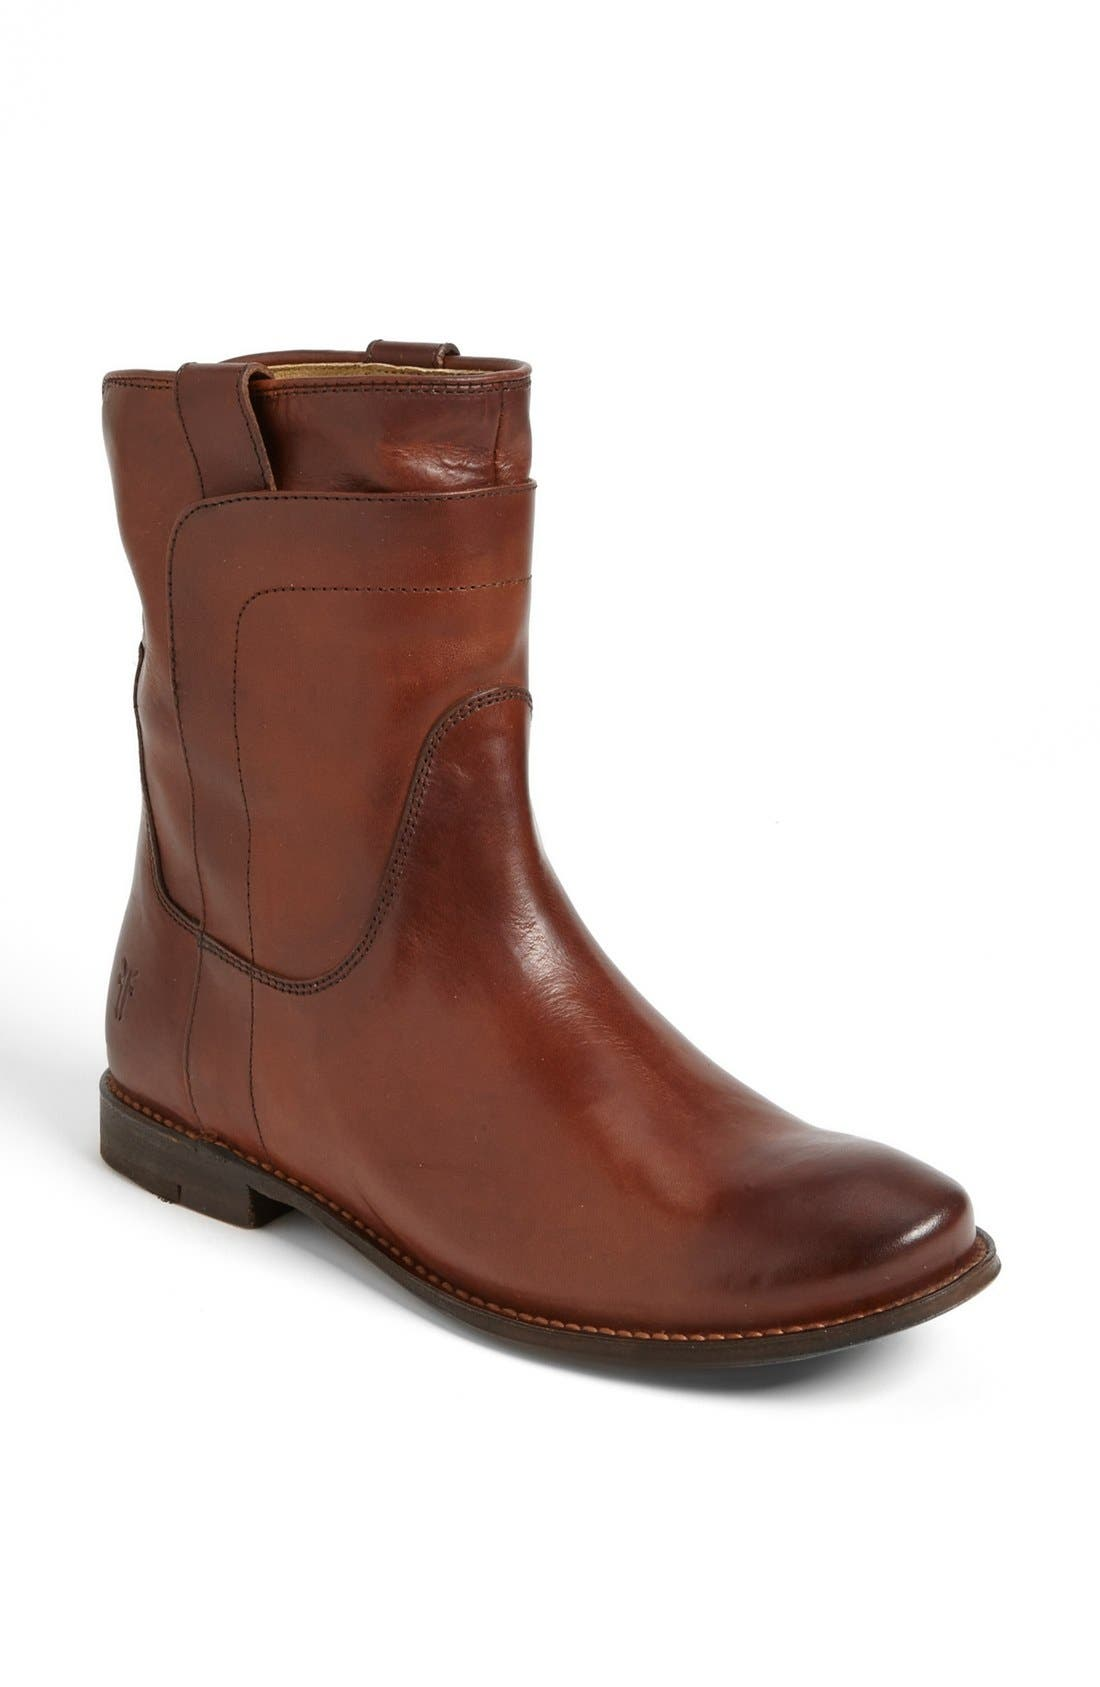 Main Image - Frye 'Paige' Short Boot